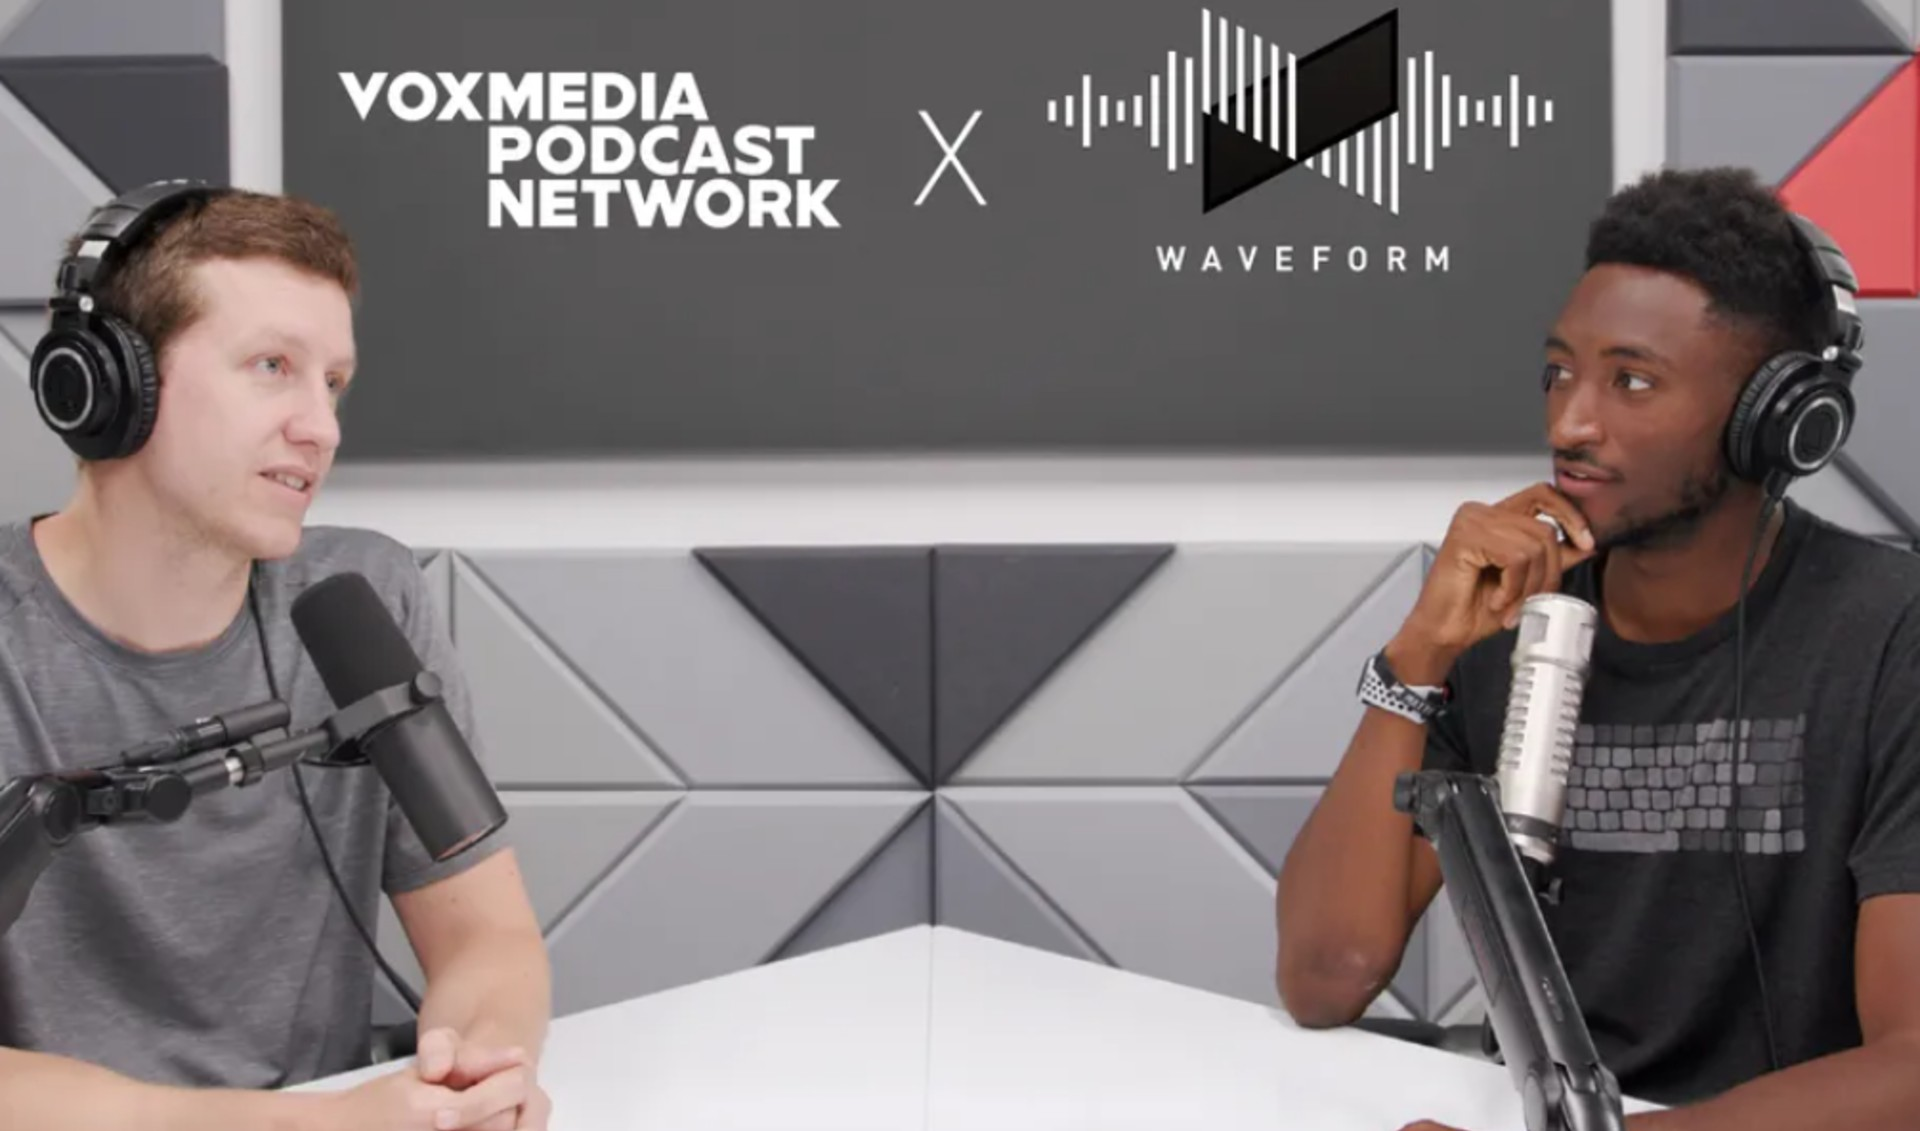 Marques Brownlee's 'Waveform' Podcast Moves To Vox's Network